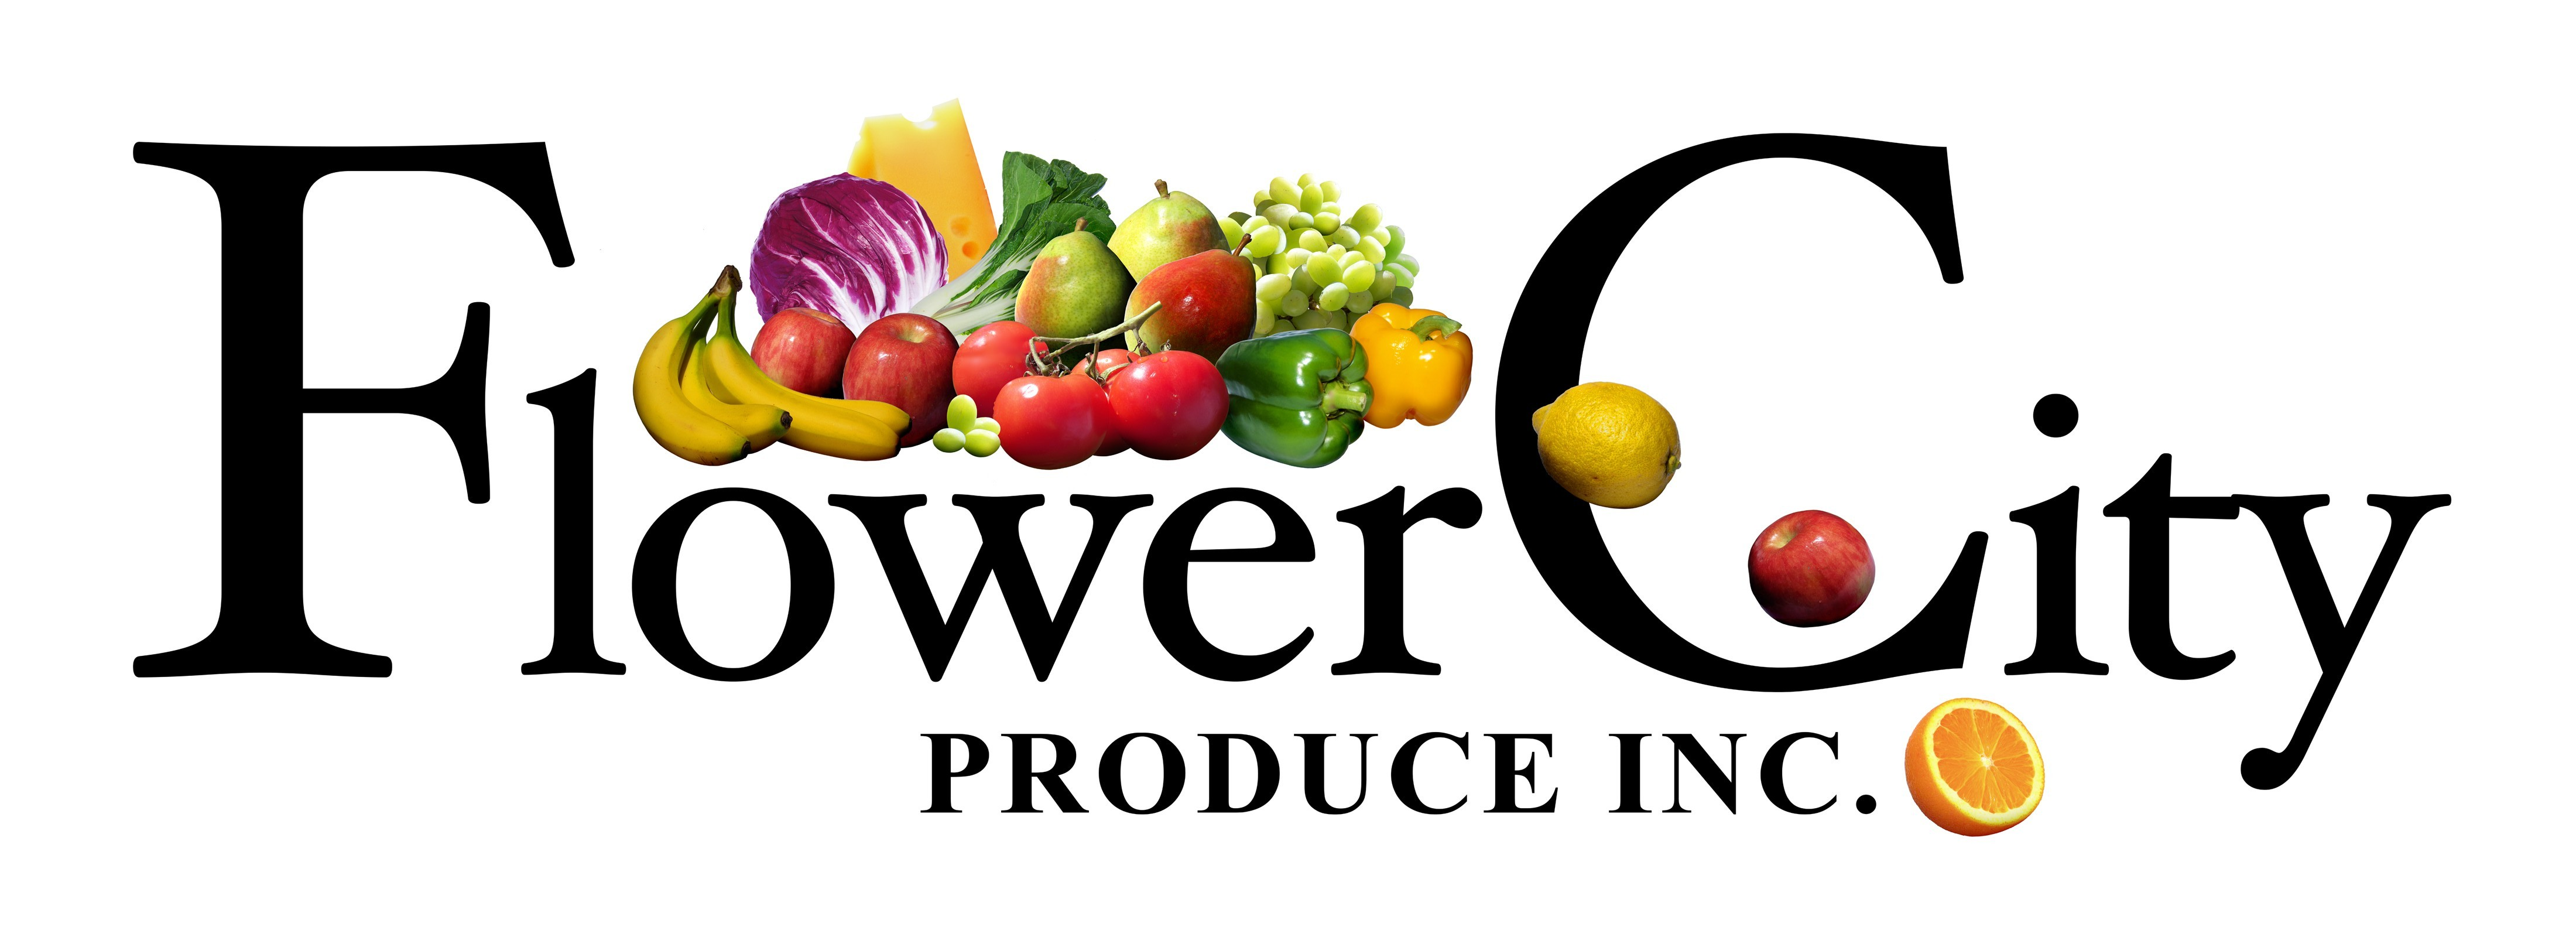 Food Supplier Rochester NY